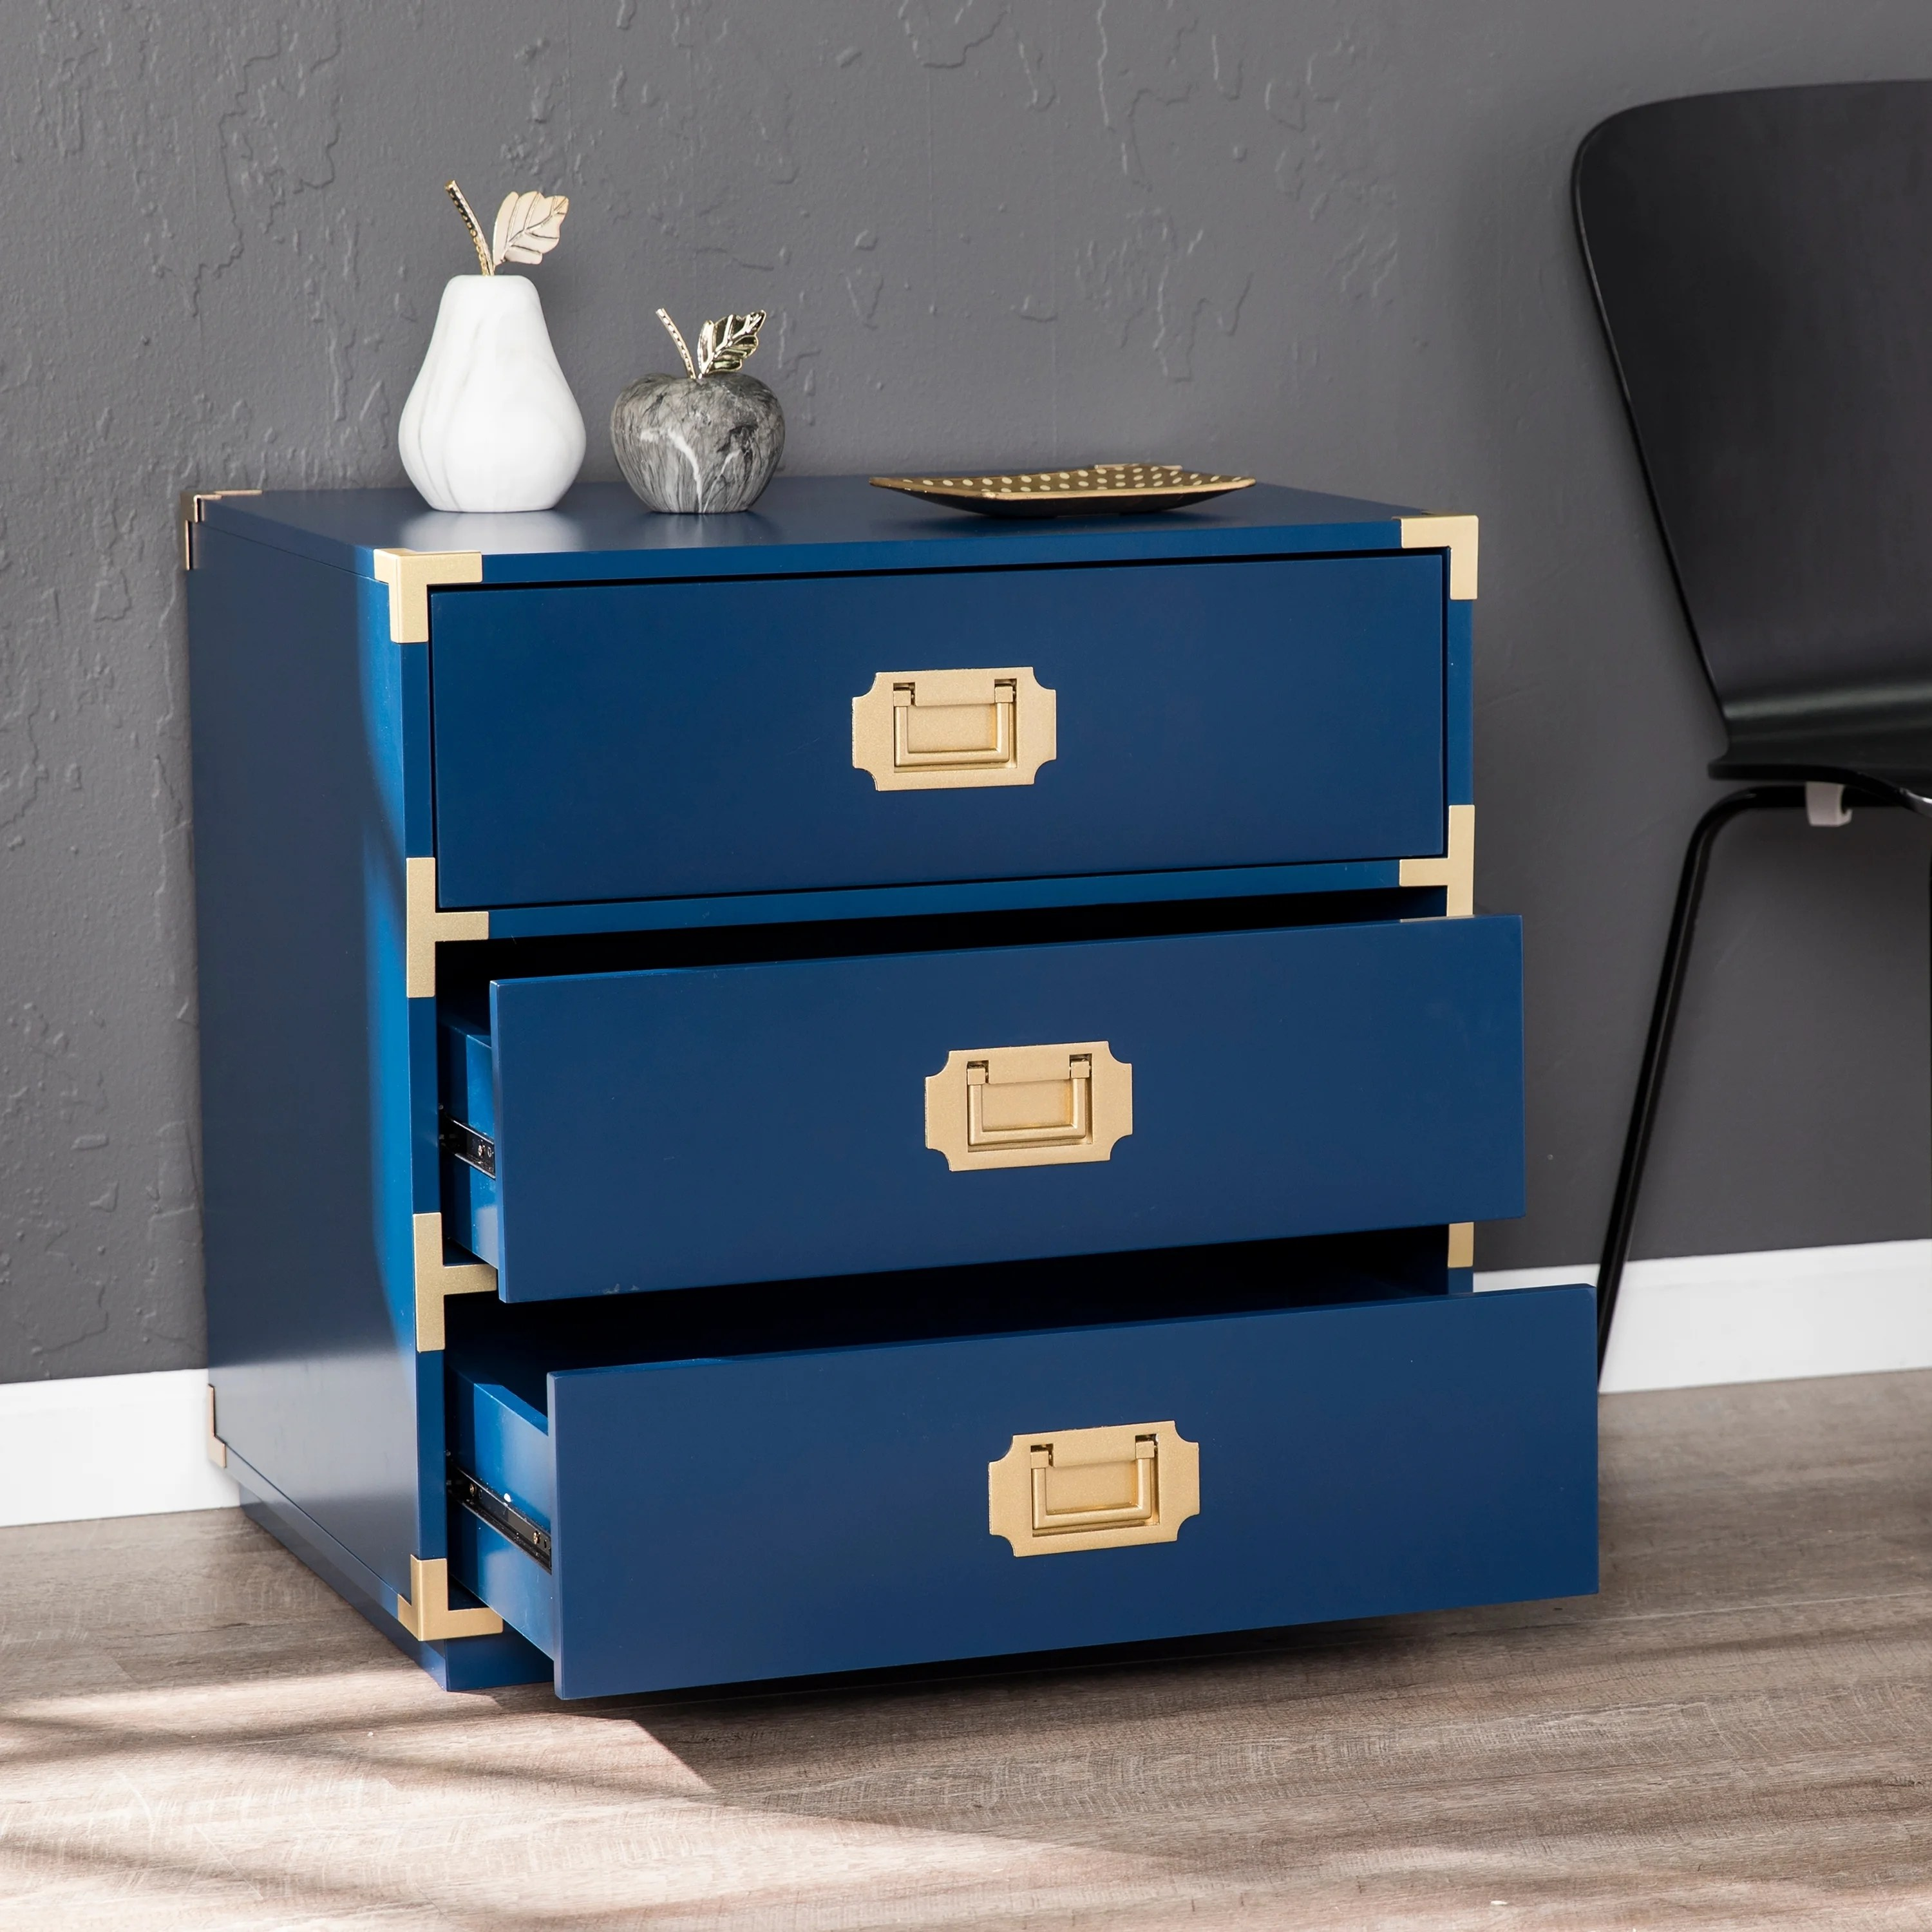 Somat Deco Harper Blvd Campaign 3 Drawer Accent Chest